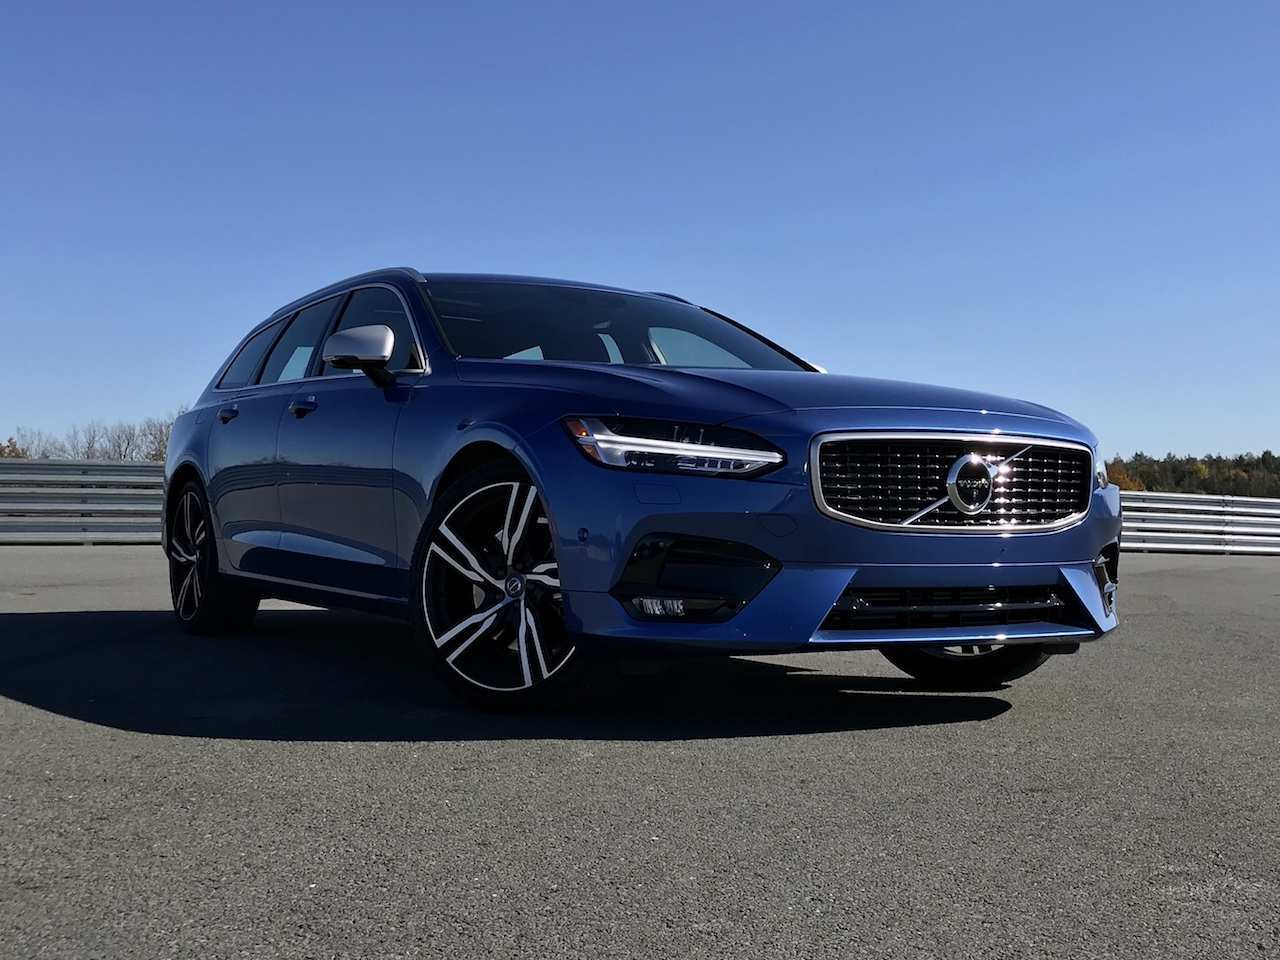 69 All New V90 Volvo 2019 Wallpaper